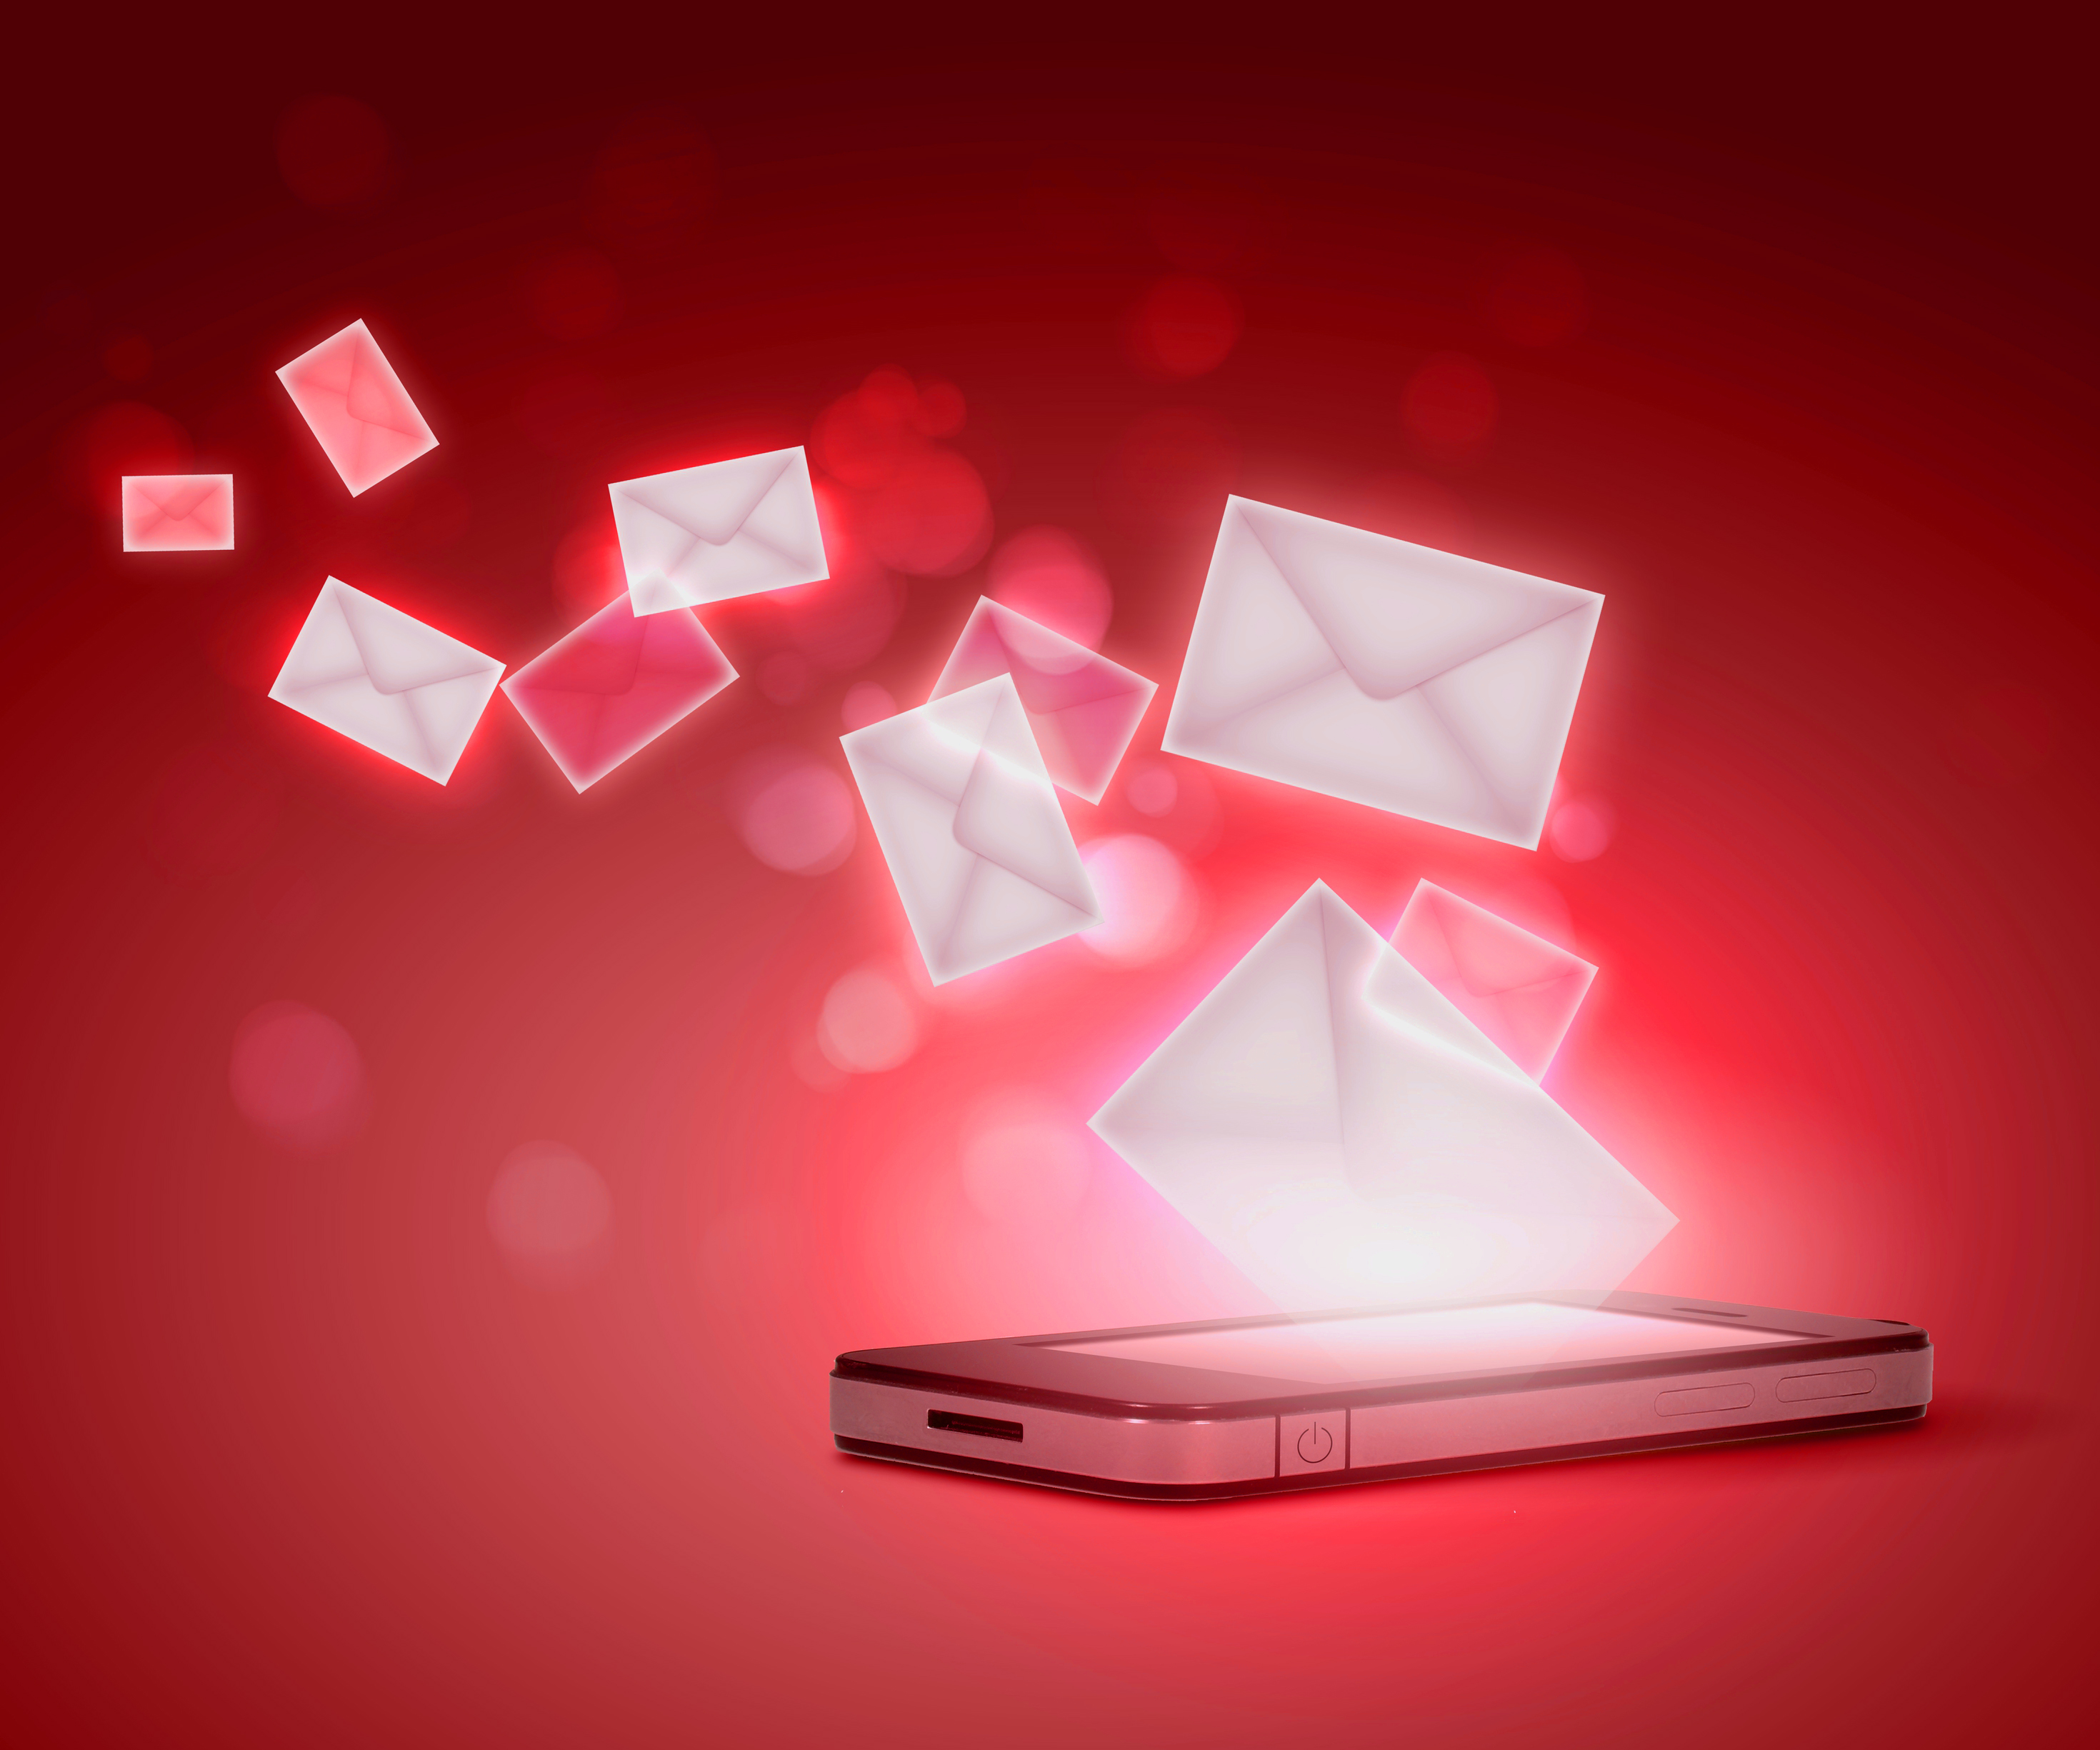 Tis' the Season to be Selling: Email Marketing for the Holidays